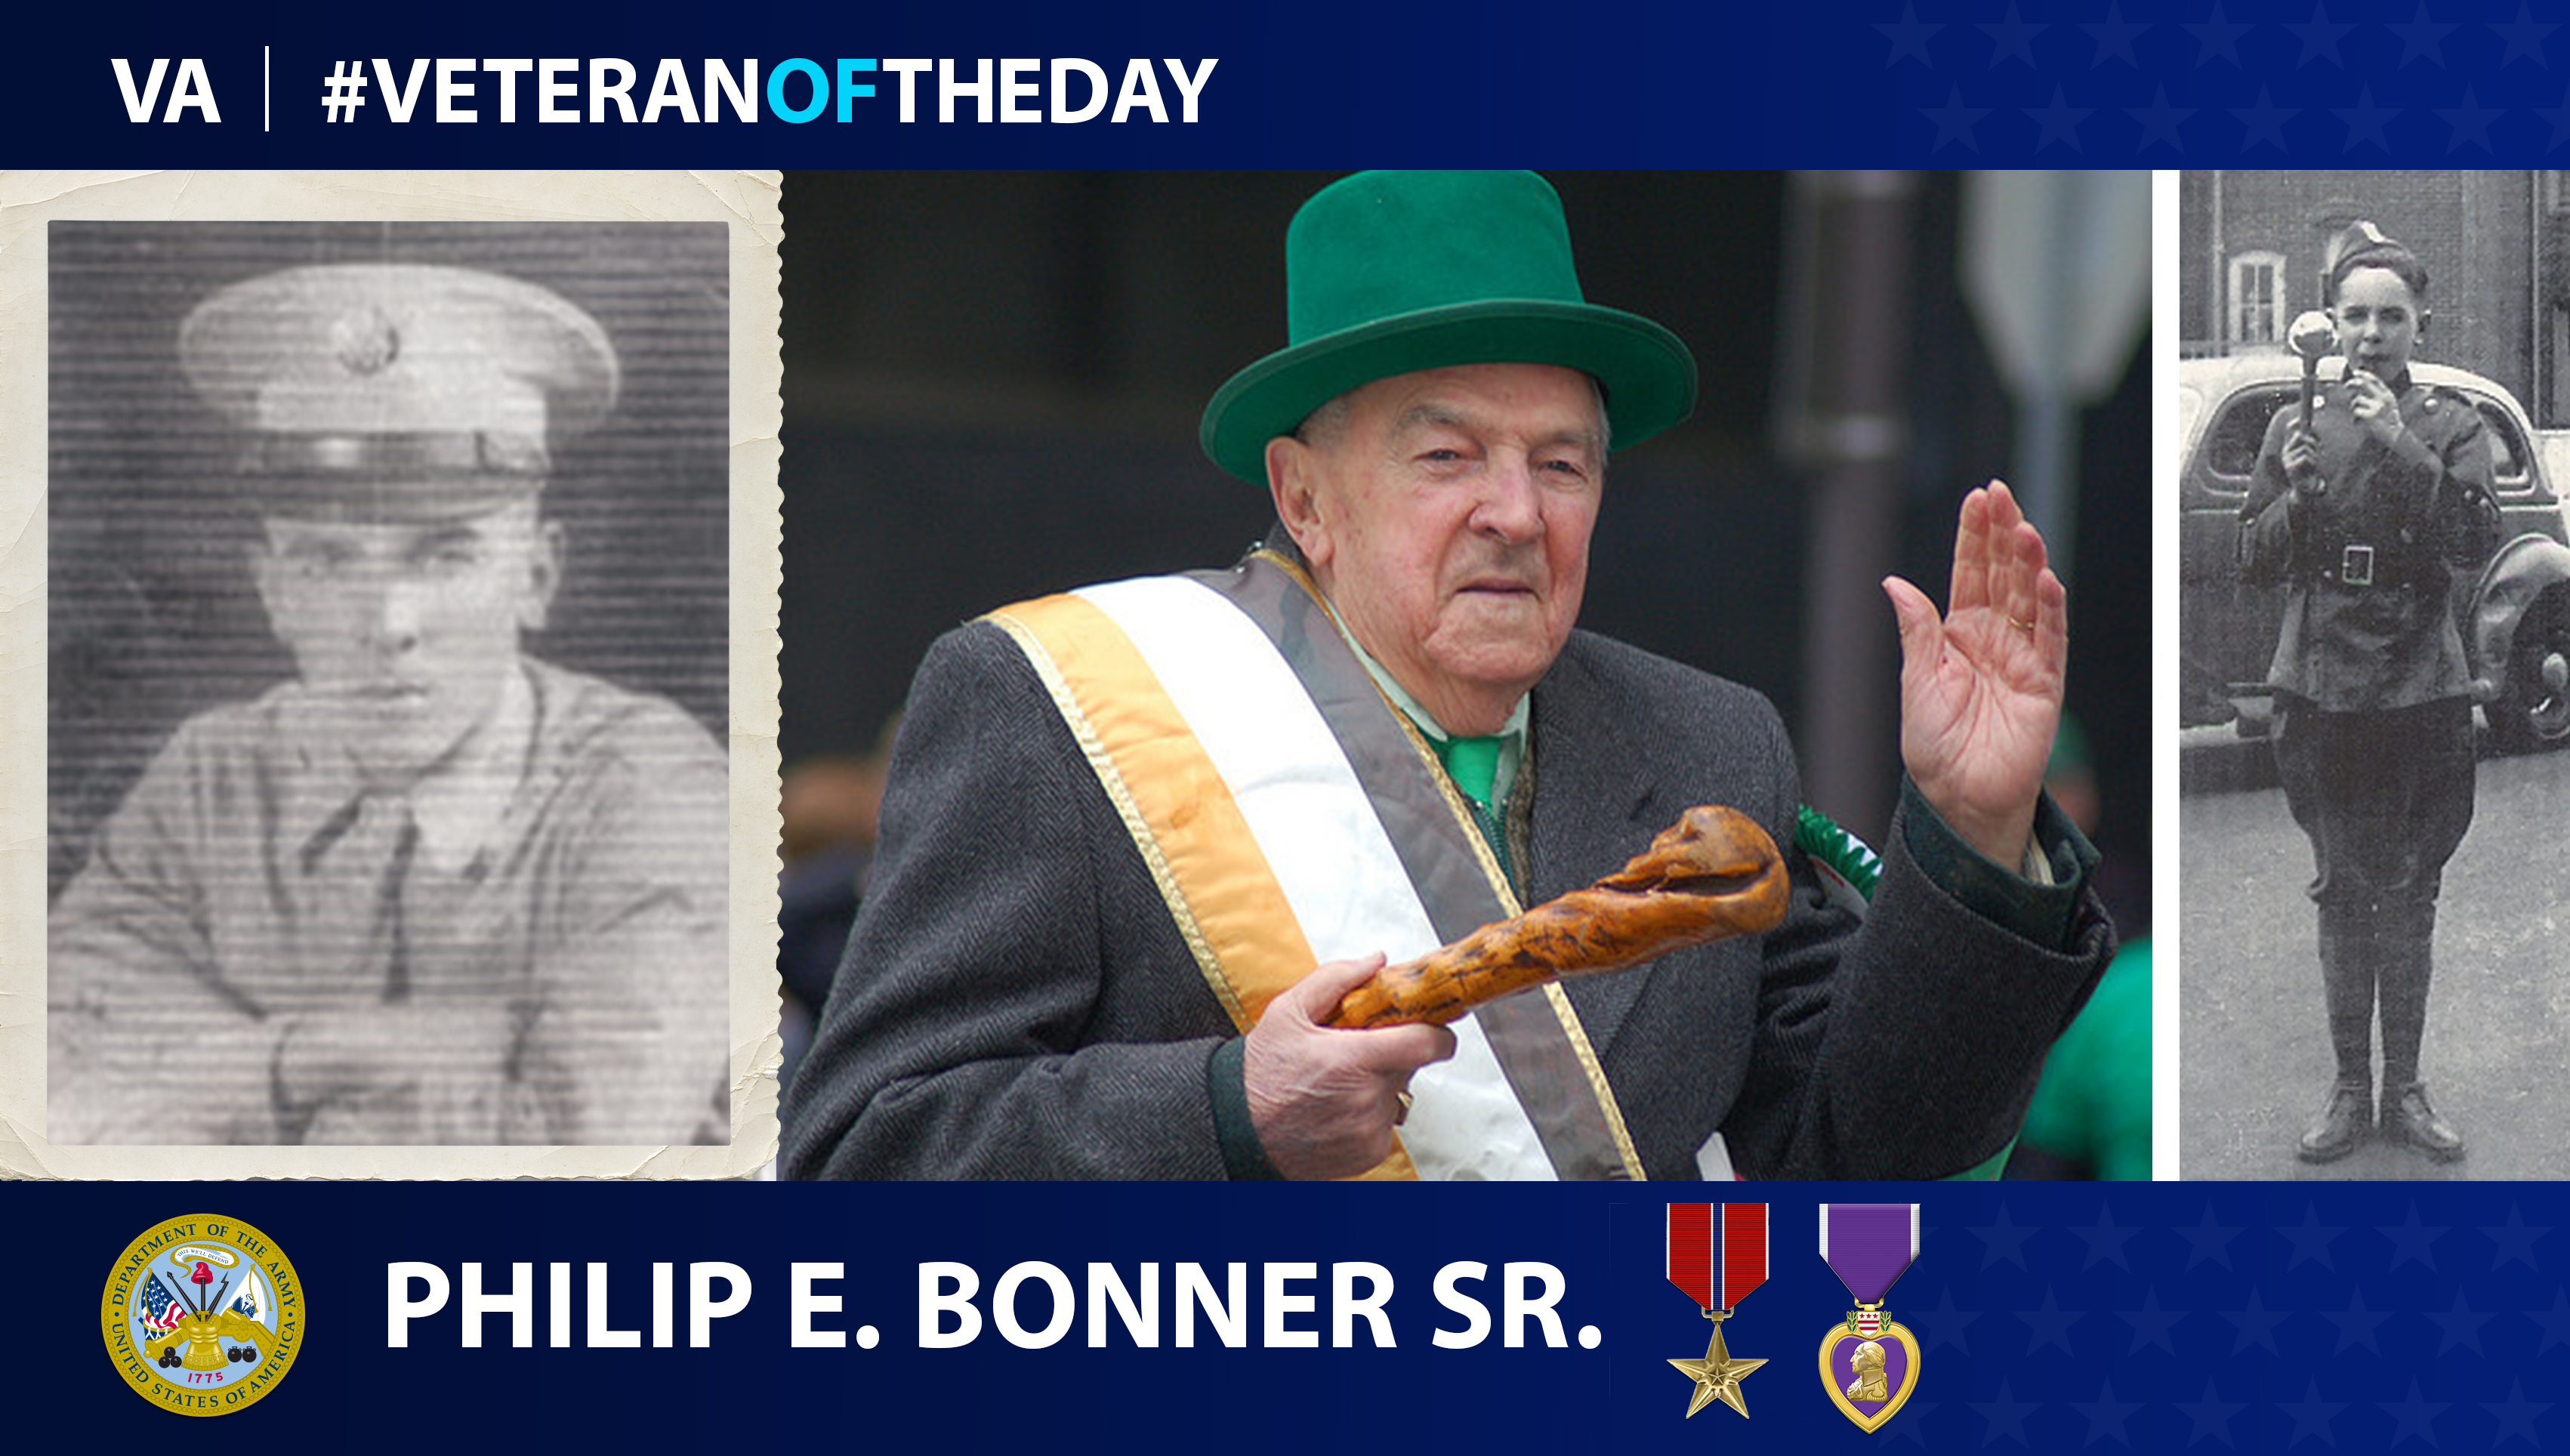 Army Veteran Philip Edward Bonner is today's Veteran of the day.